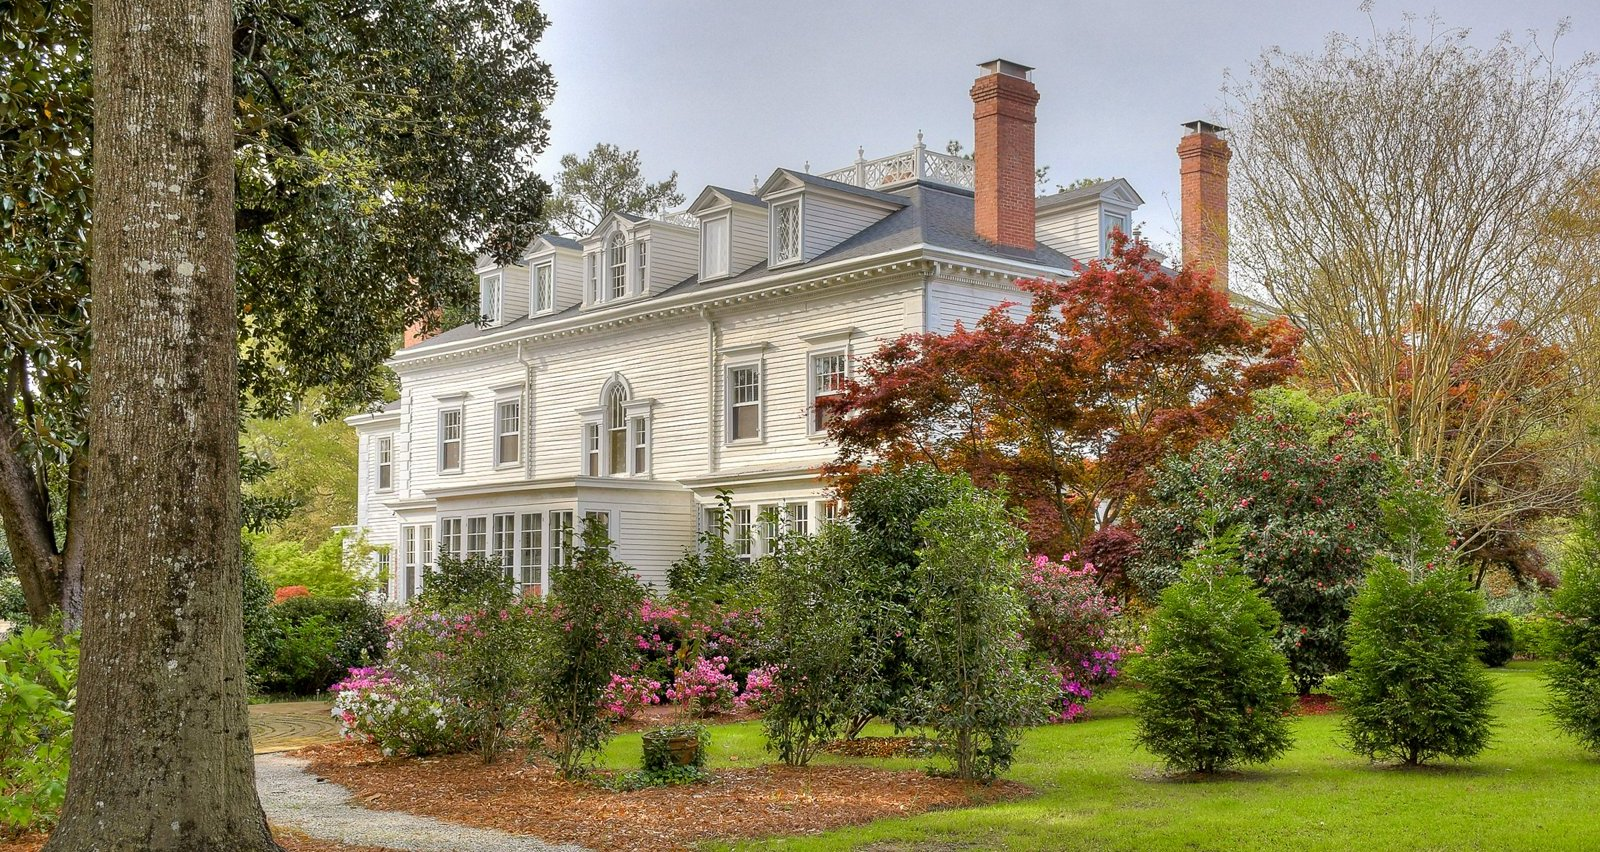 c.1887 Neoclassical in Aiken's Winter Colony Historic District I for $2.5M (PHOTOS)